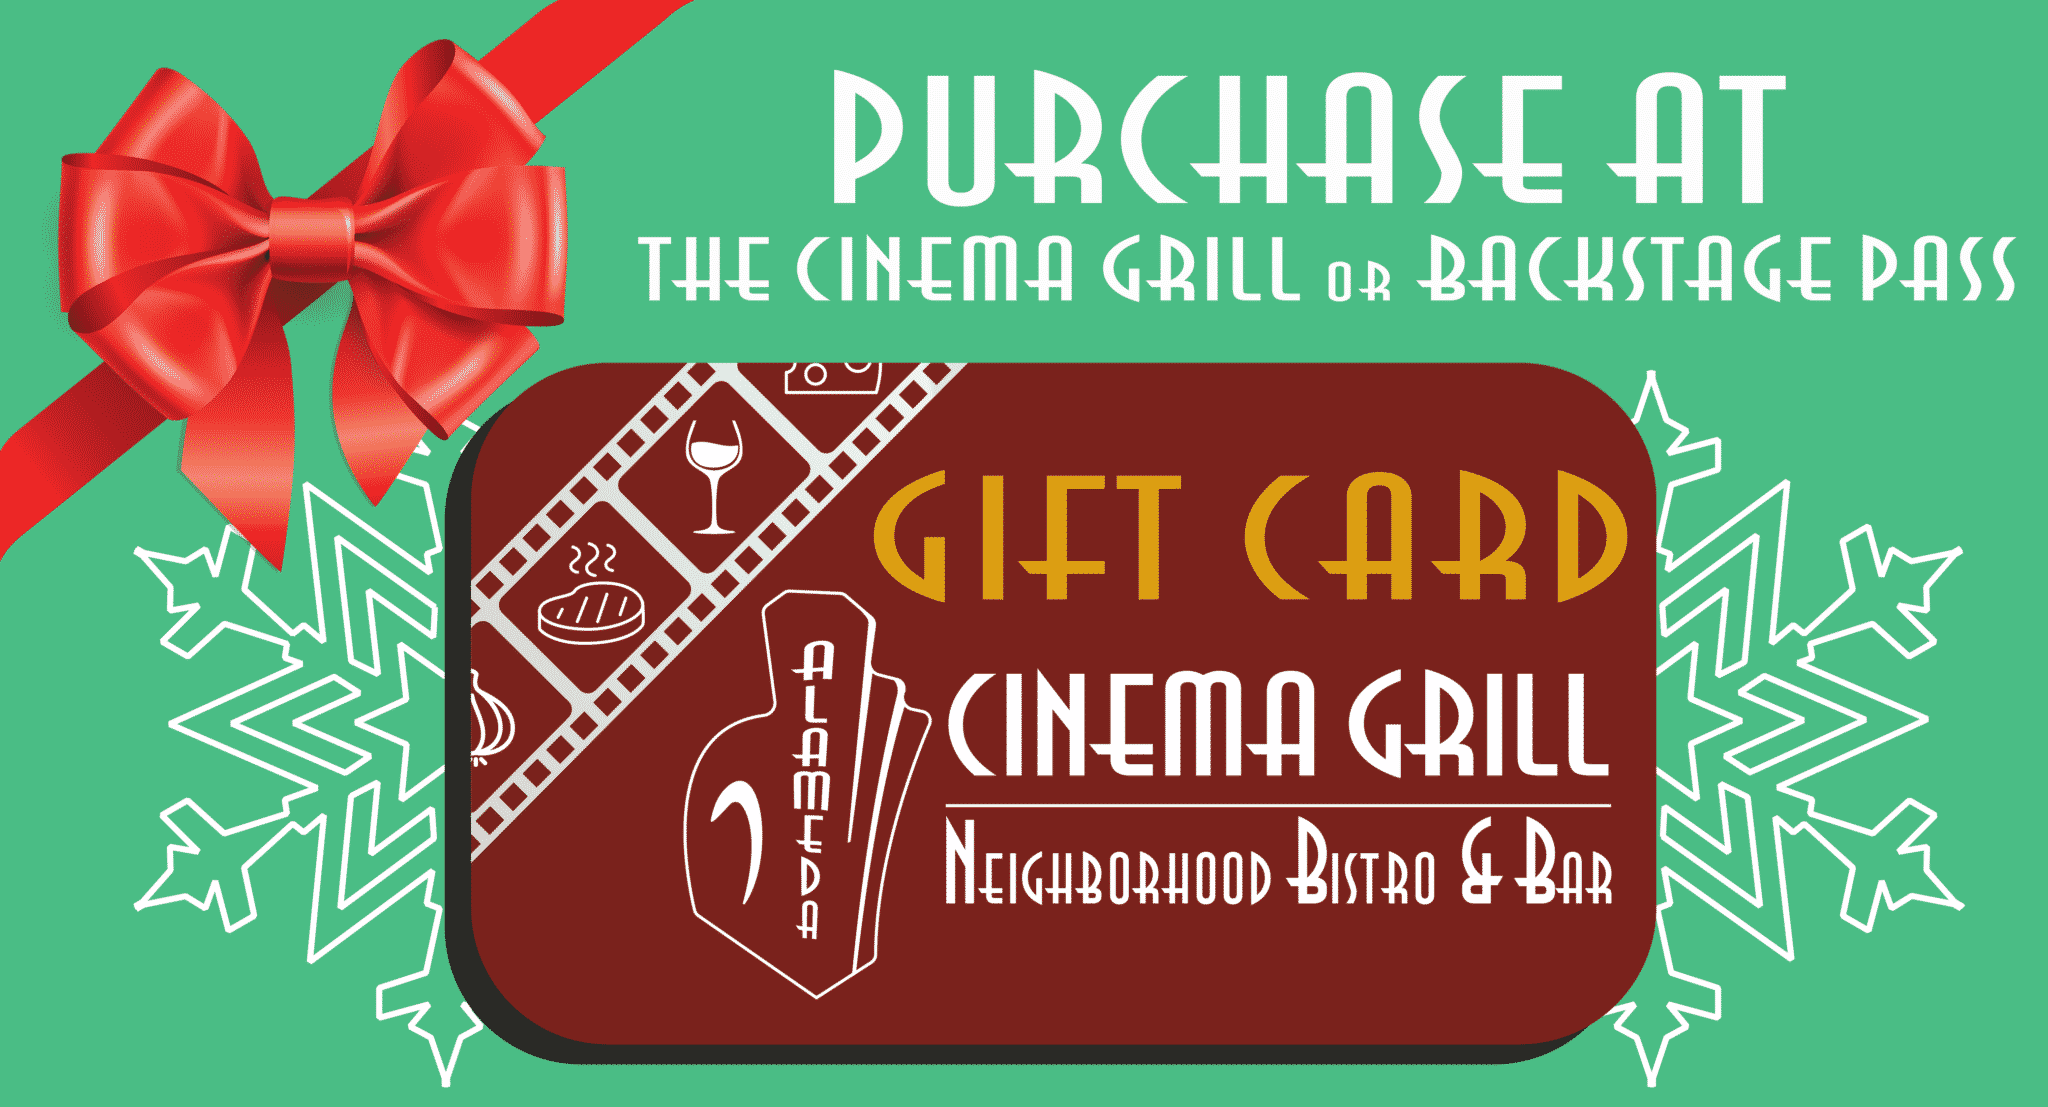 Alameda Cinema Grill Gift Card